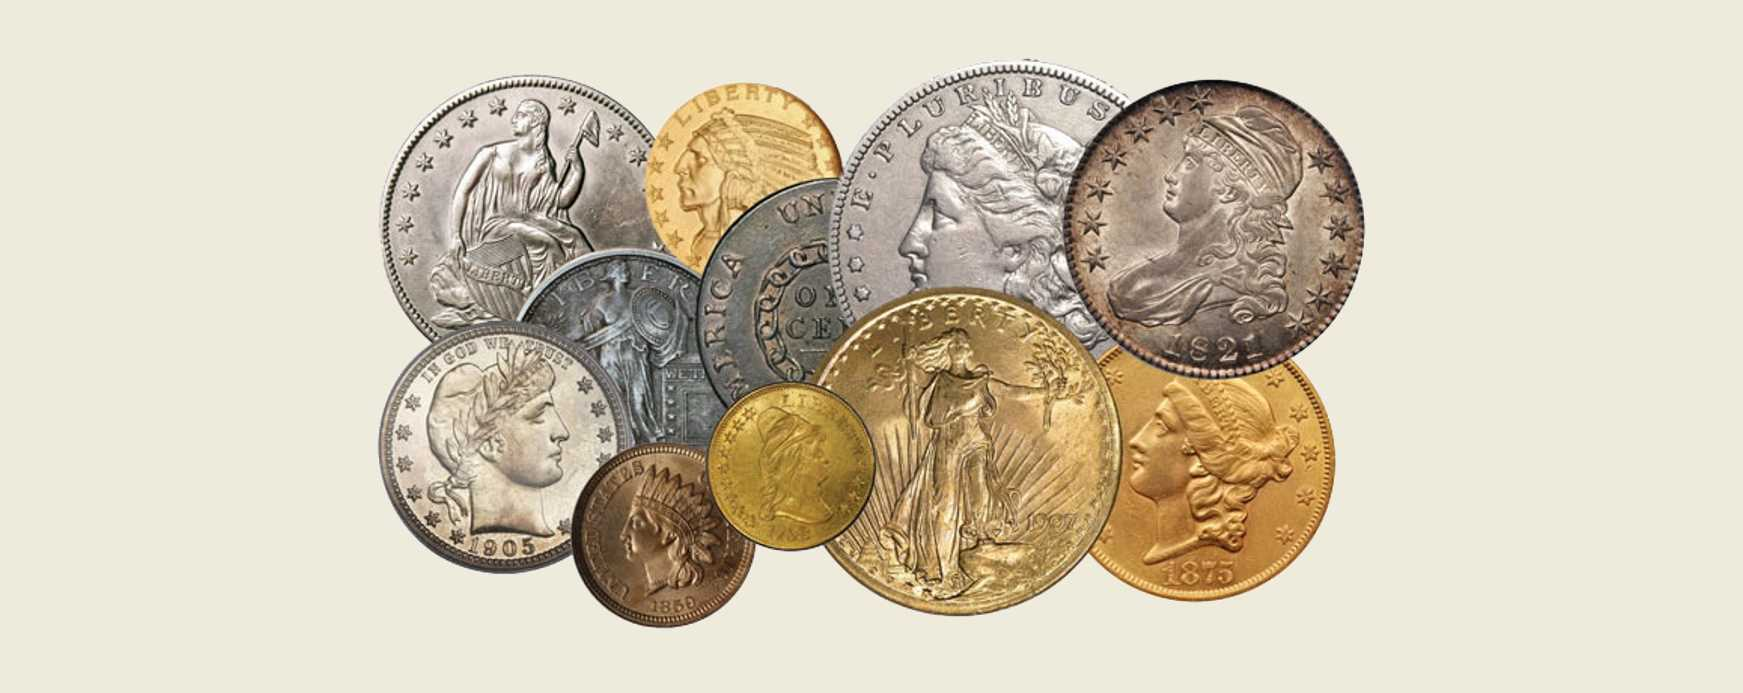 We buy and sell U.S. and Foreign Coins